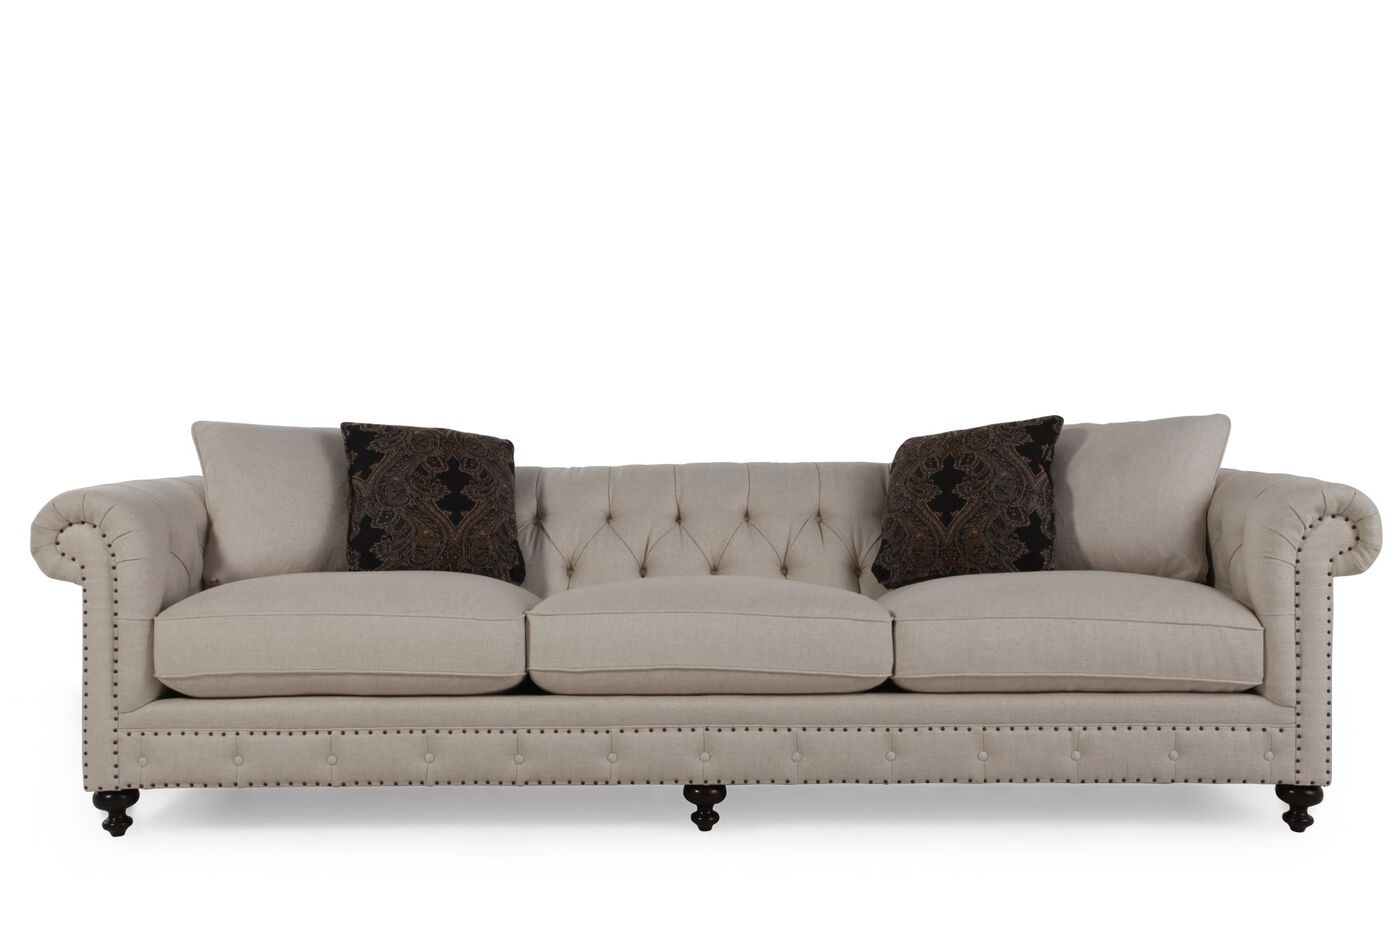 Bernhardt riviera large sofa mathis brothers furniture for Mathis brothers living room furniture sectional sofas